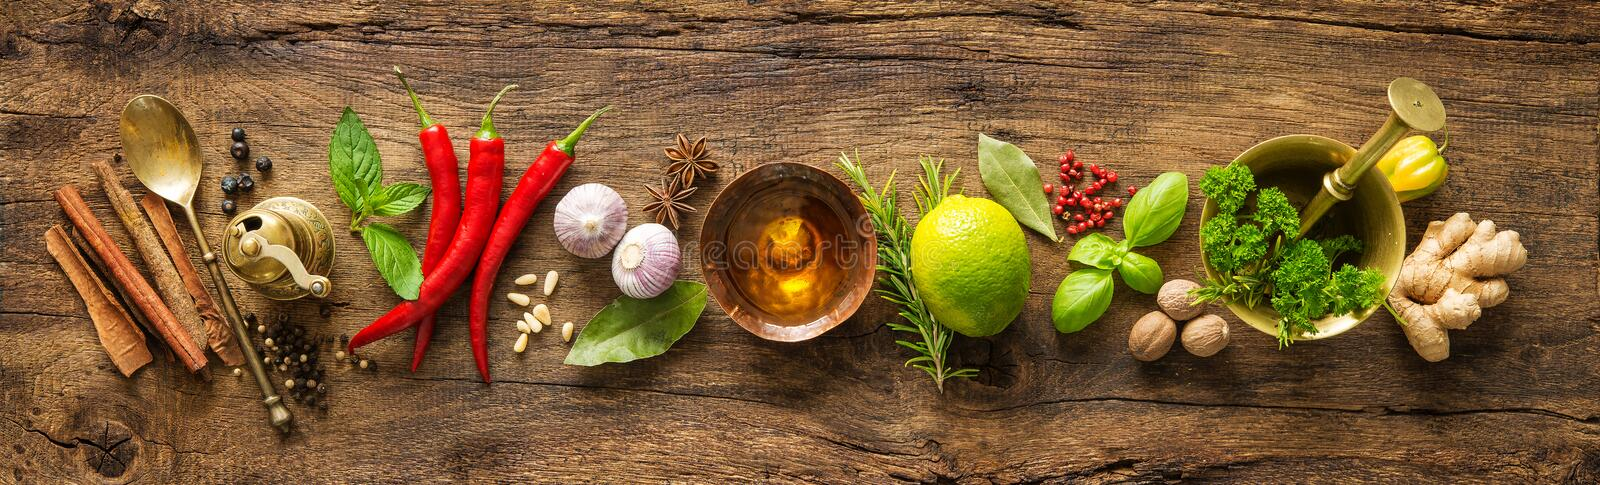 Various herbs and spices royalty free stock photography